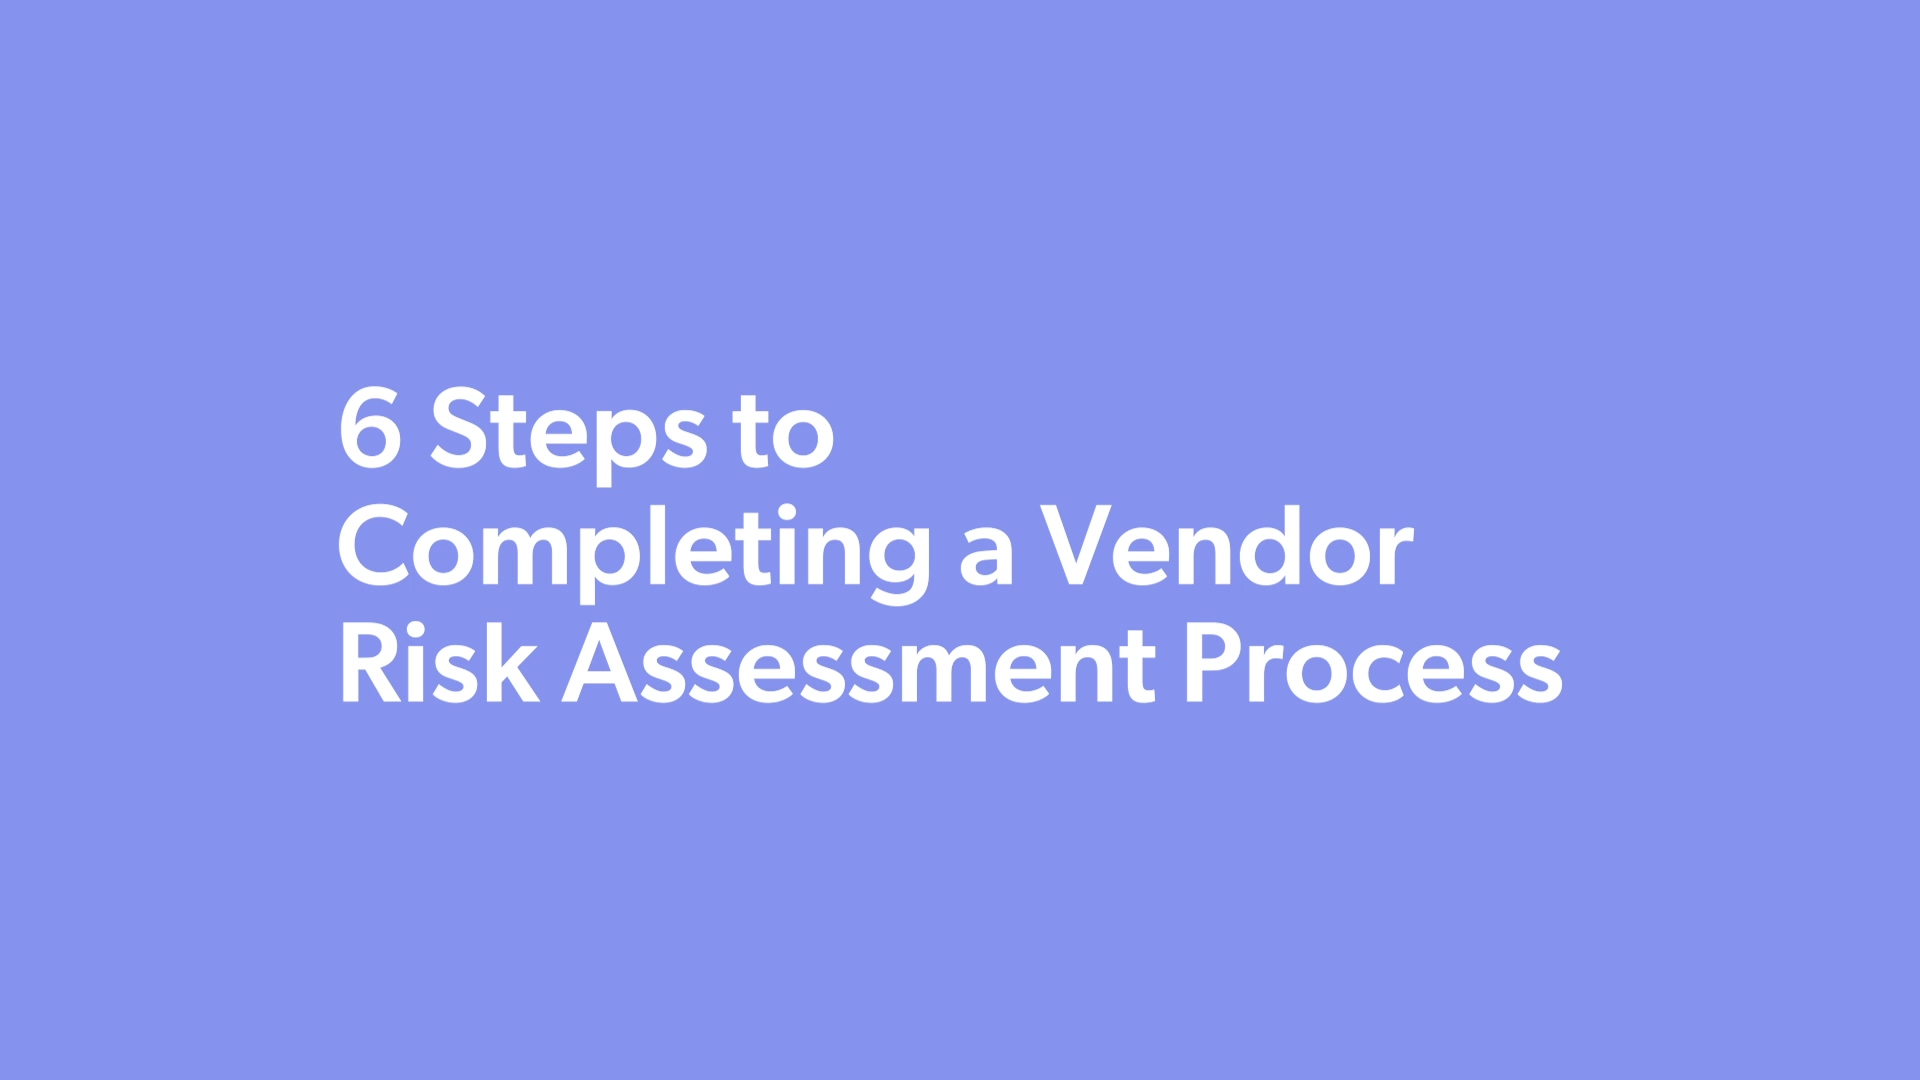 12.03.2020-6-steps-to-completing-a-vendor-risk-assessment-process